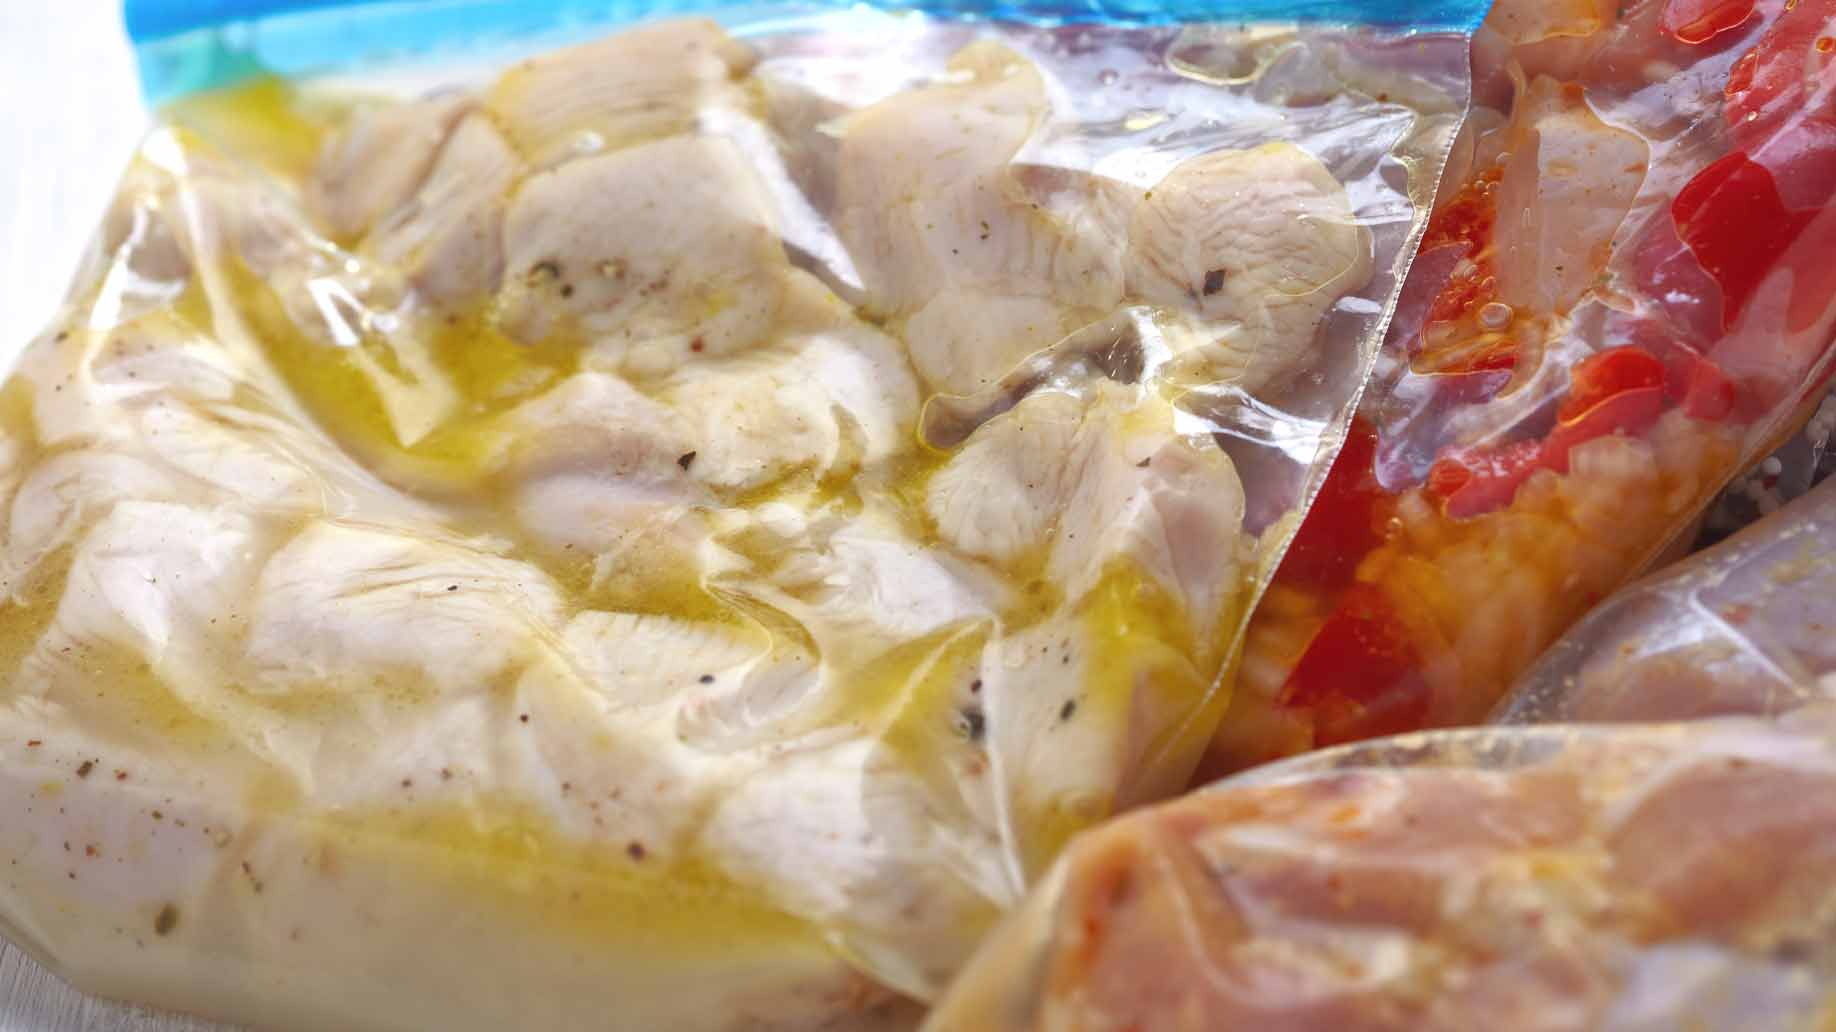 crock-pot chicken freezer meals